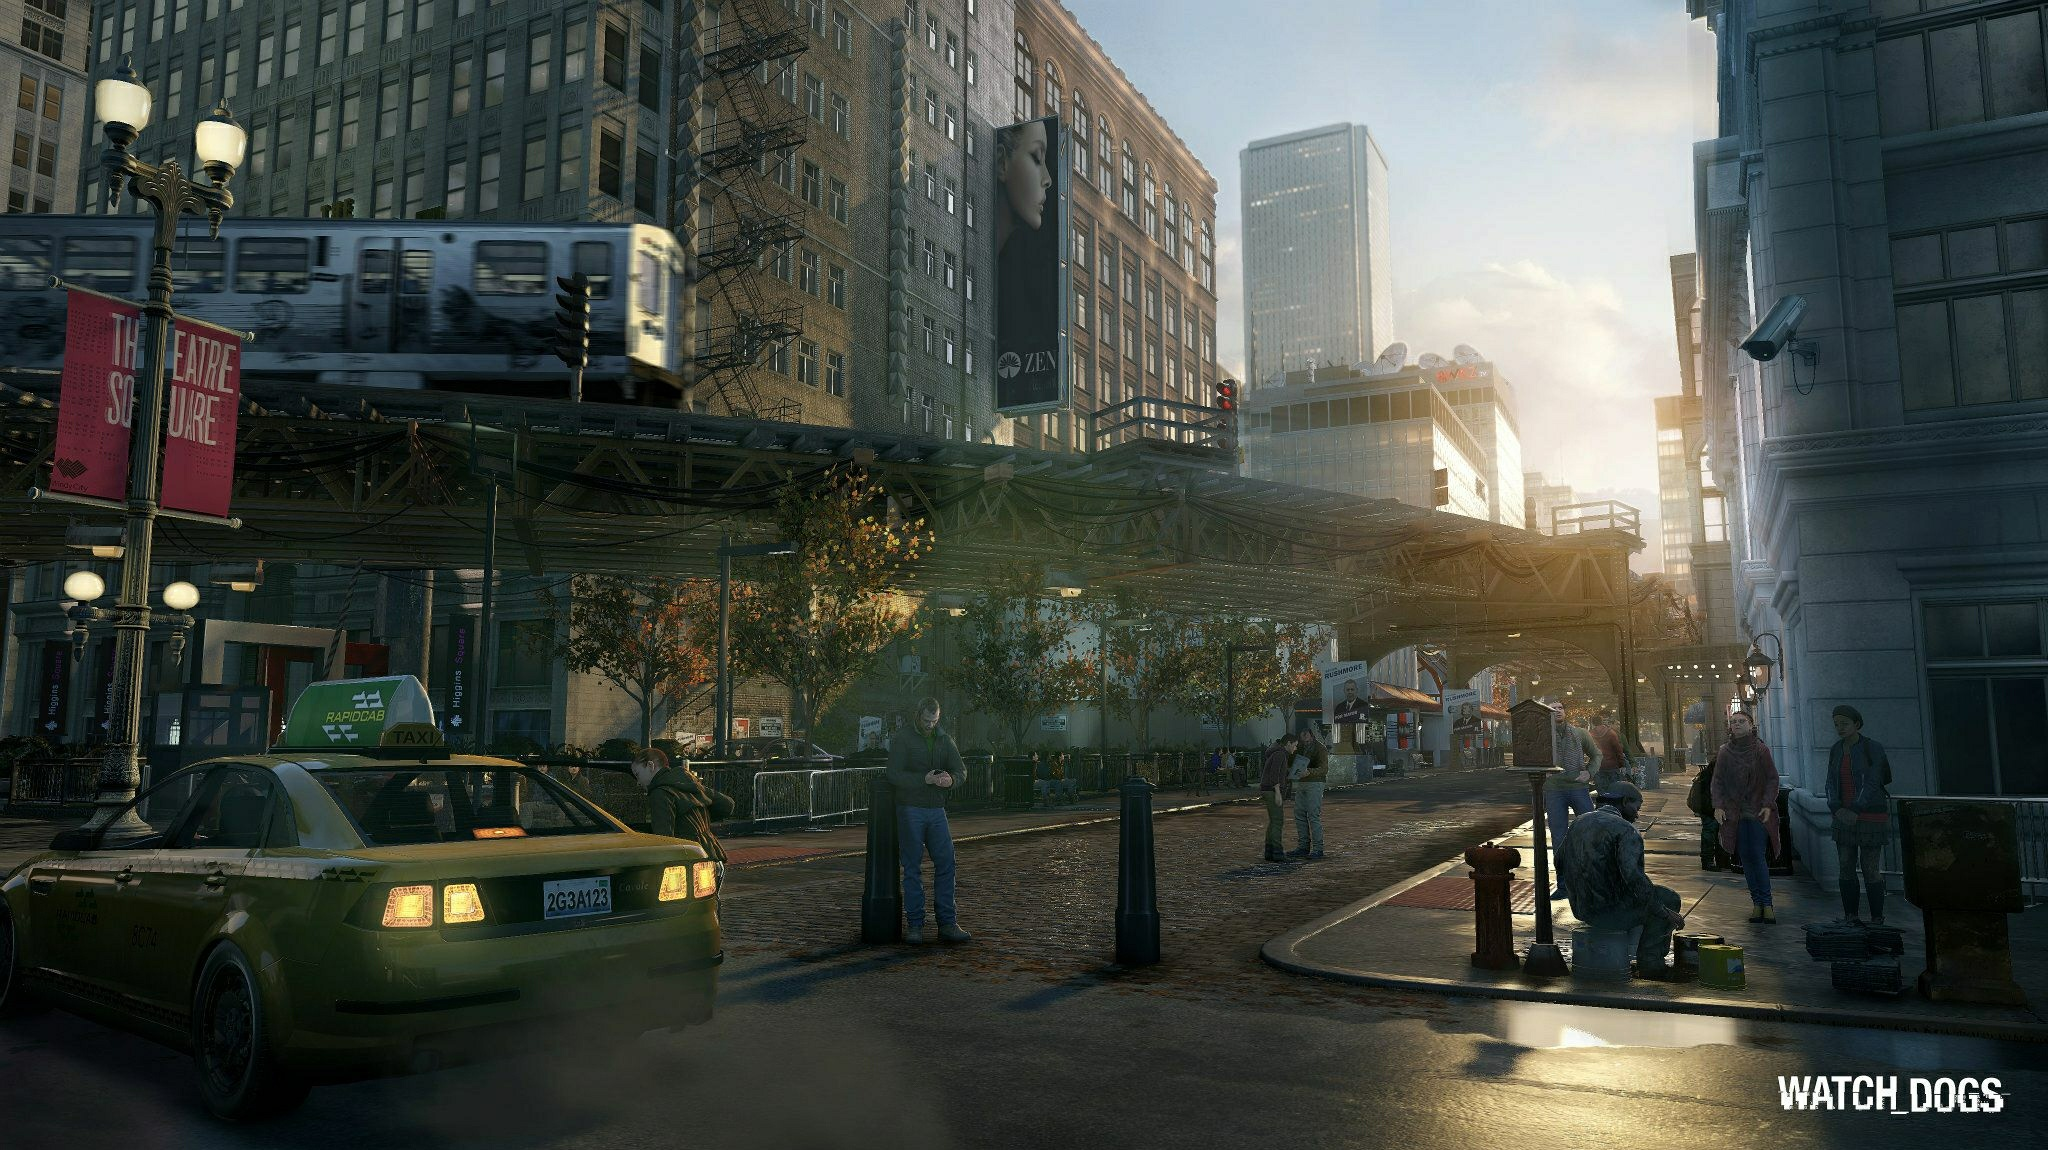 [عکس: Watch_Dogs_city_screenshot.jpg]